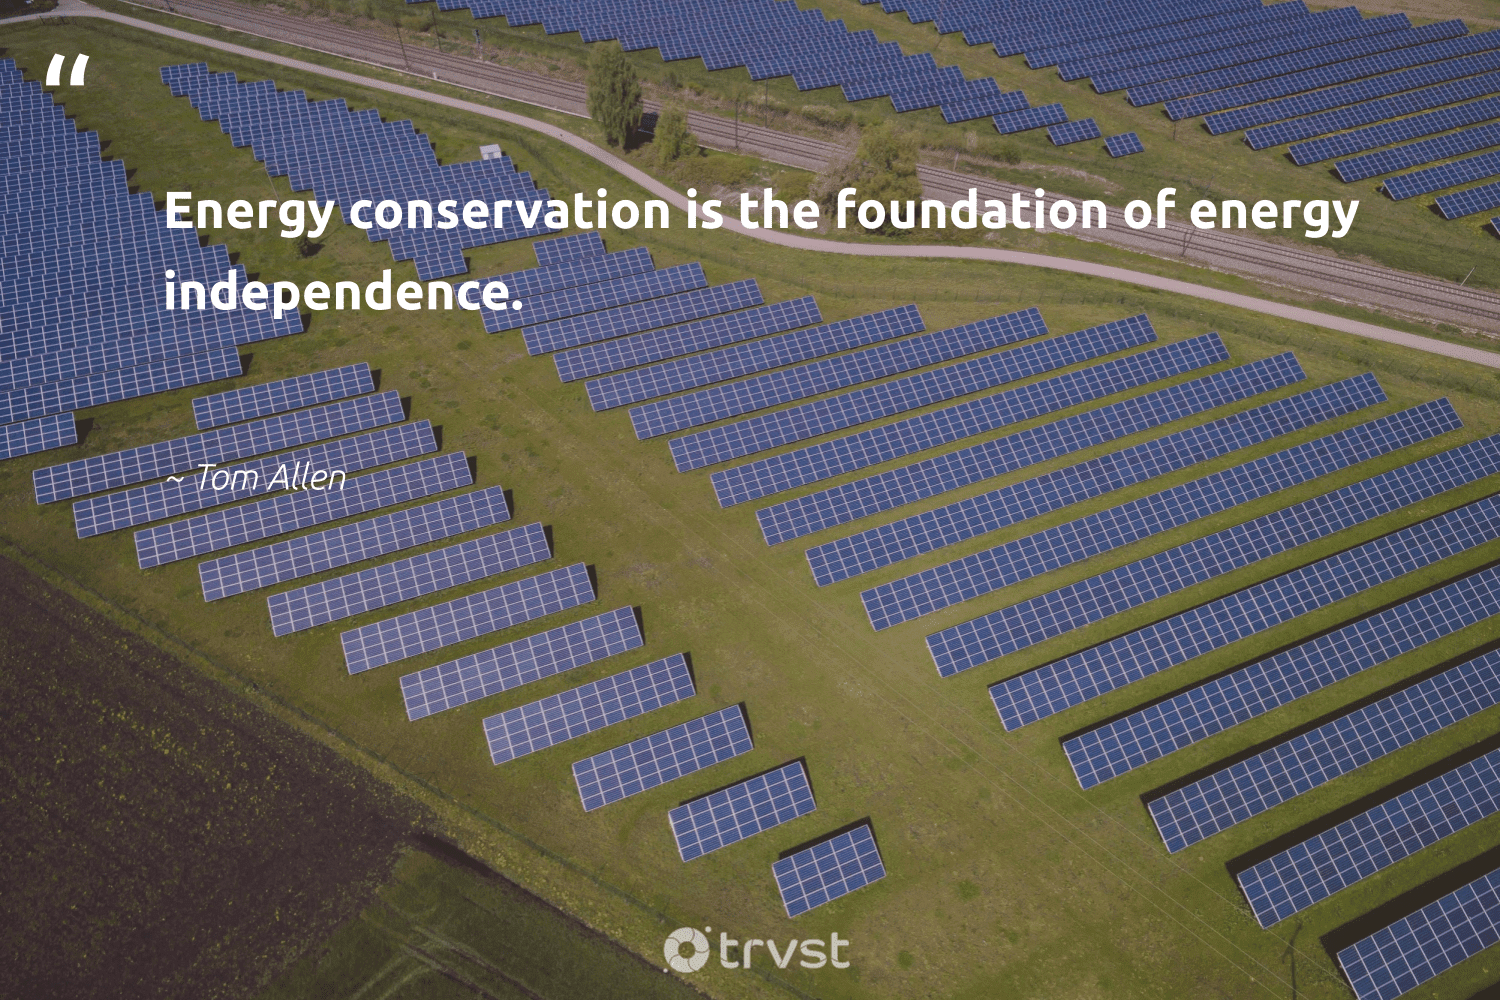 """""""Energy conservation is the foundation of energy independence.""""  - Tom Allen #trvst #quotes #energy #conservation #foundation #earth #sustainability #giveback #socialimpact #mothernature #livegreen #gogreen"""